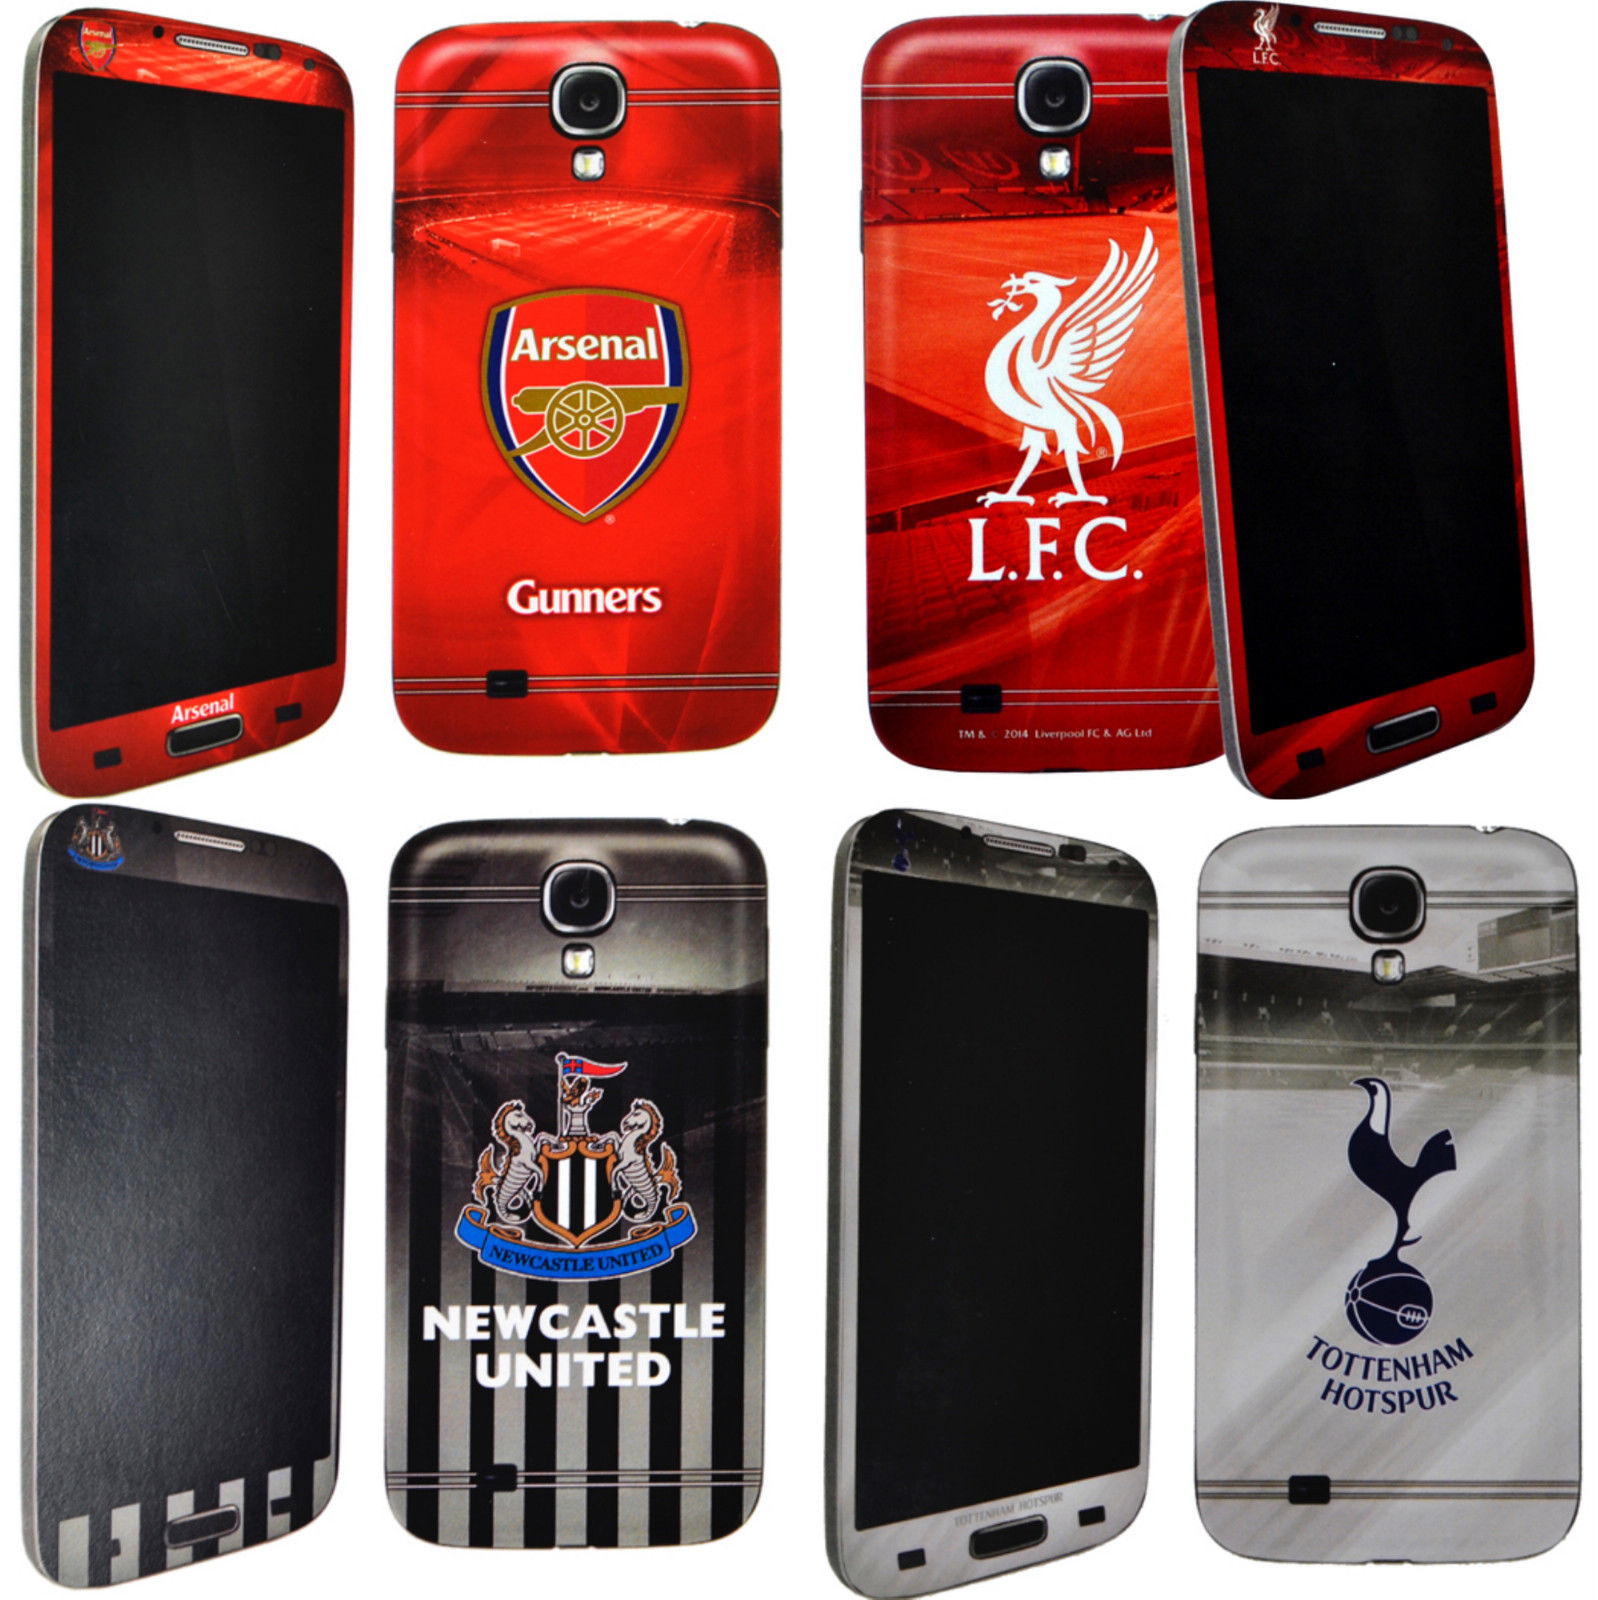 Samsung Galaxy S4 Licensed Football Mobile Phone Skin